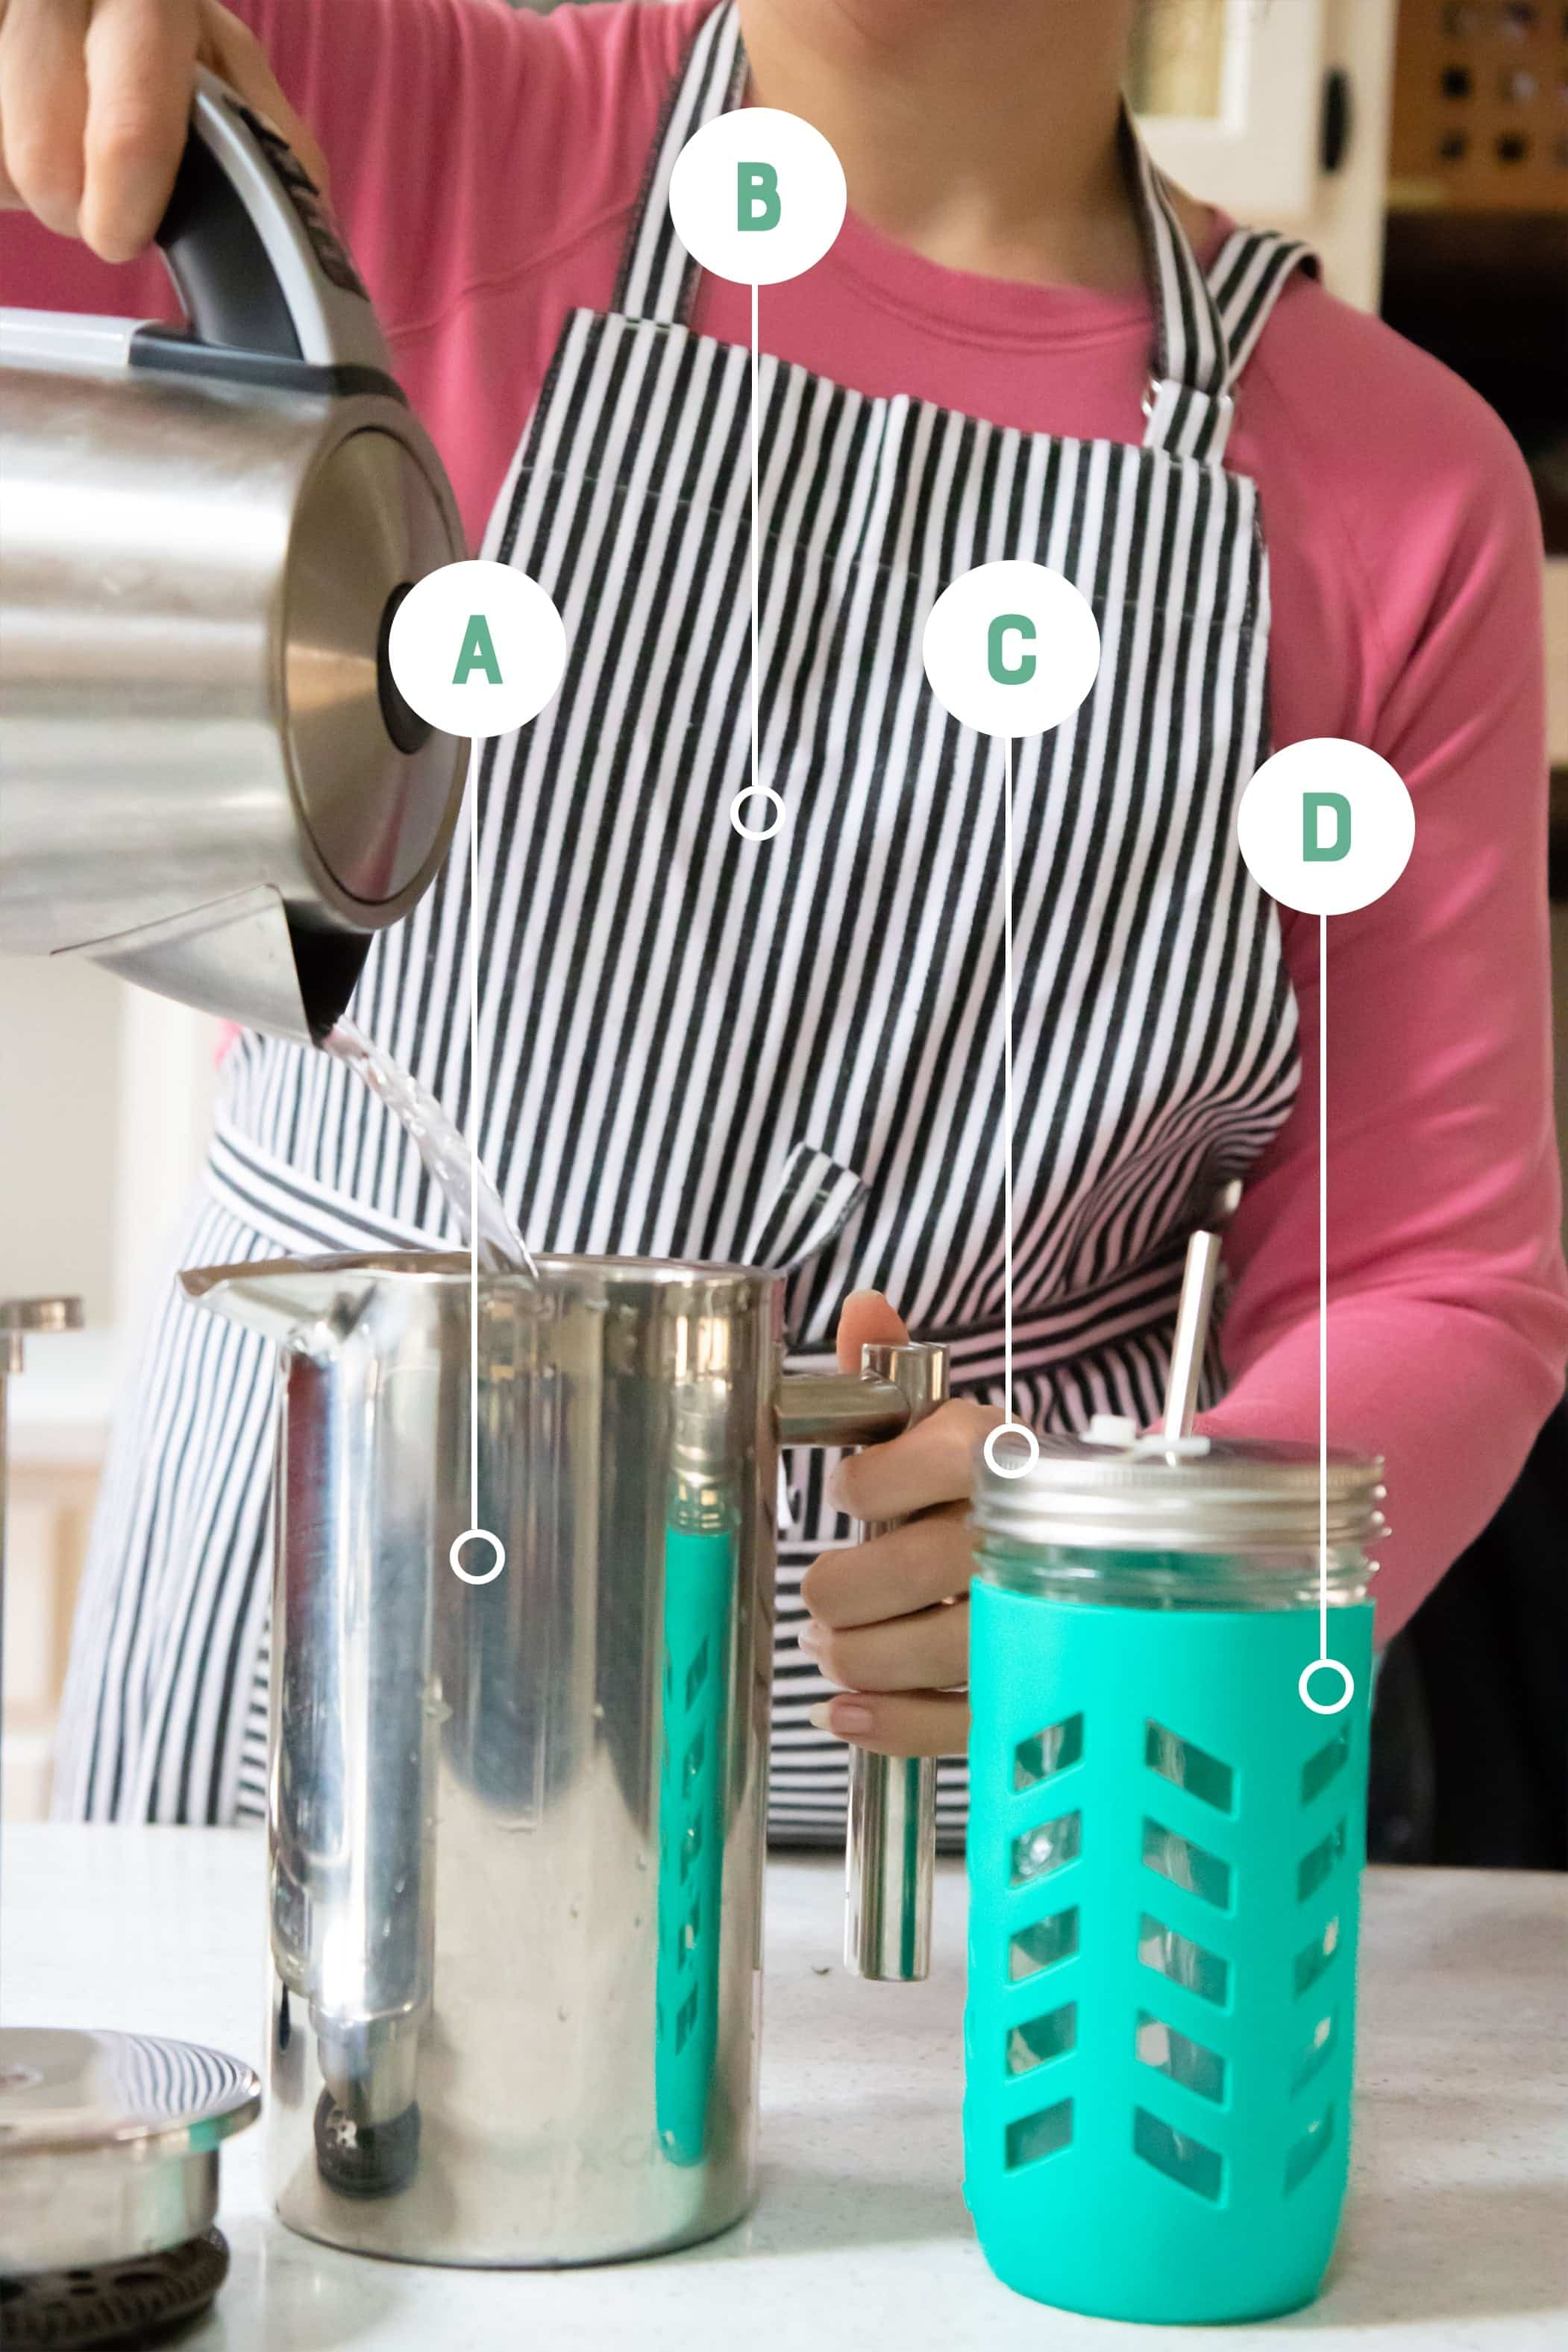 Woman pouring water from an electric kettle into a steel French press. Items are labeled with letters.